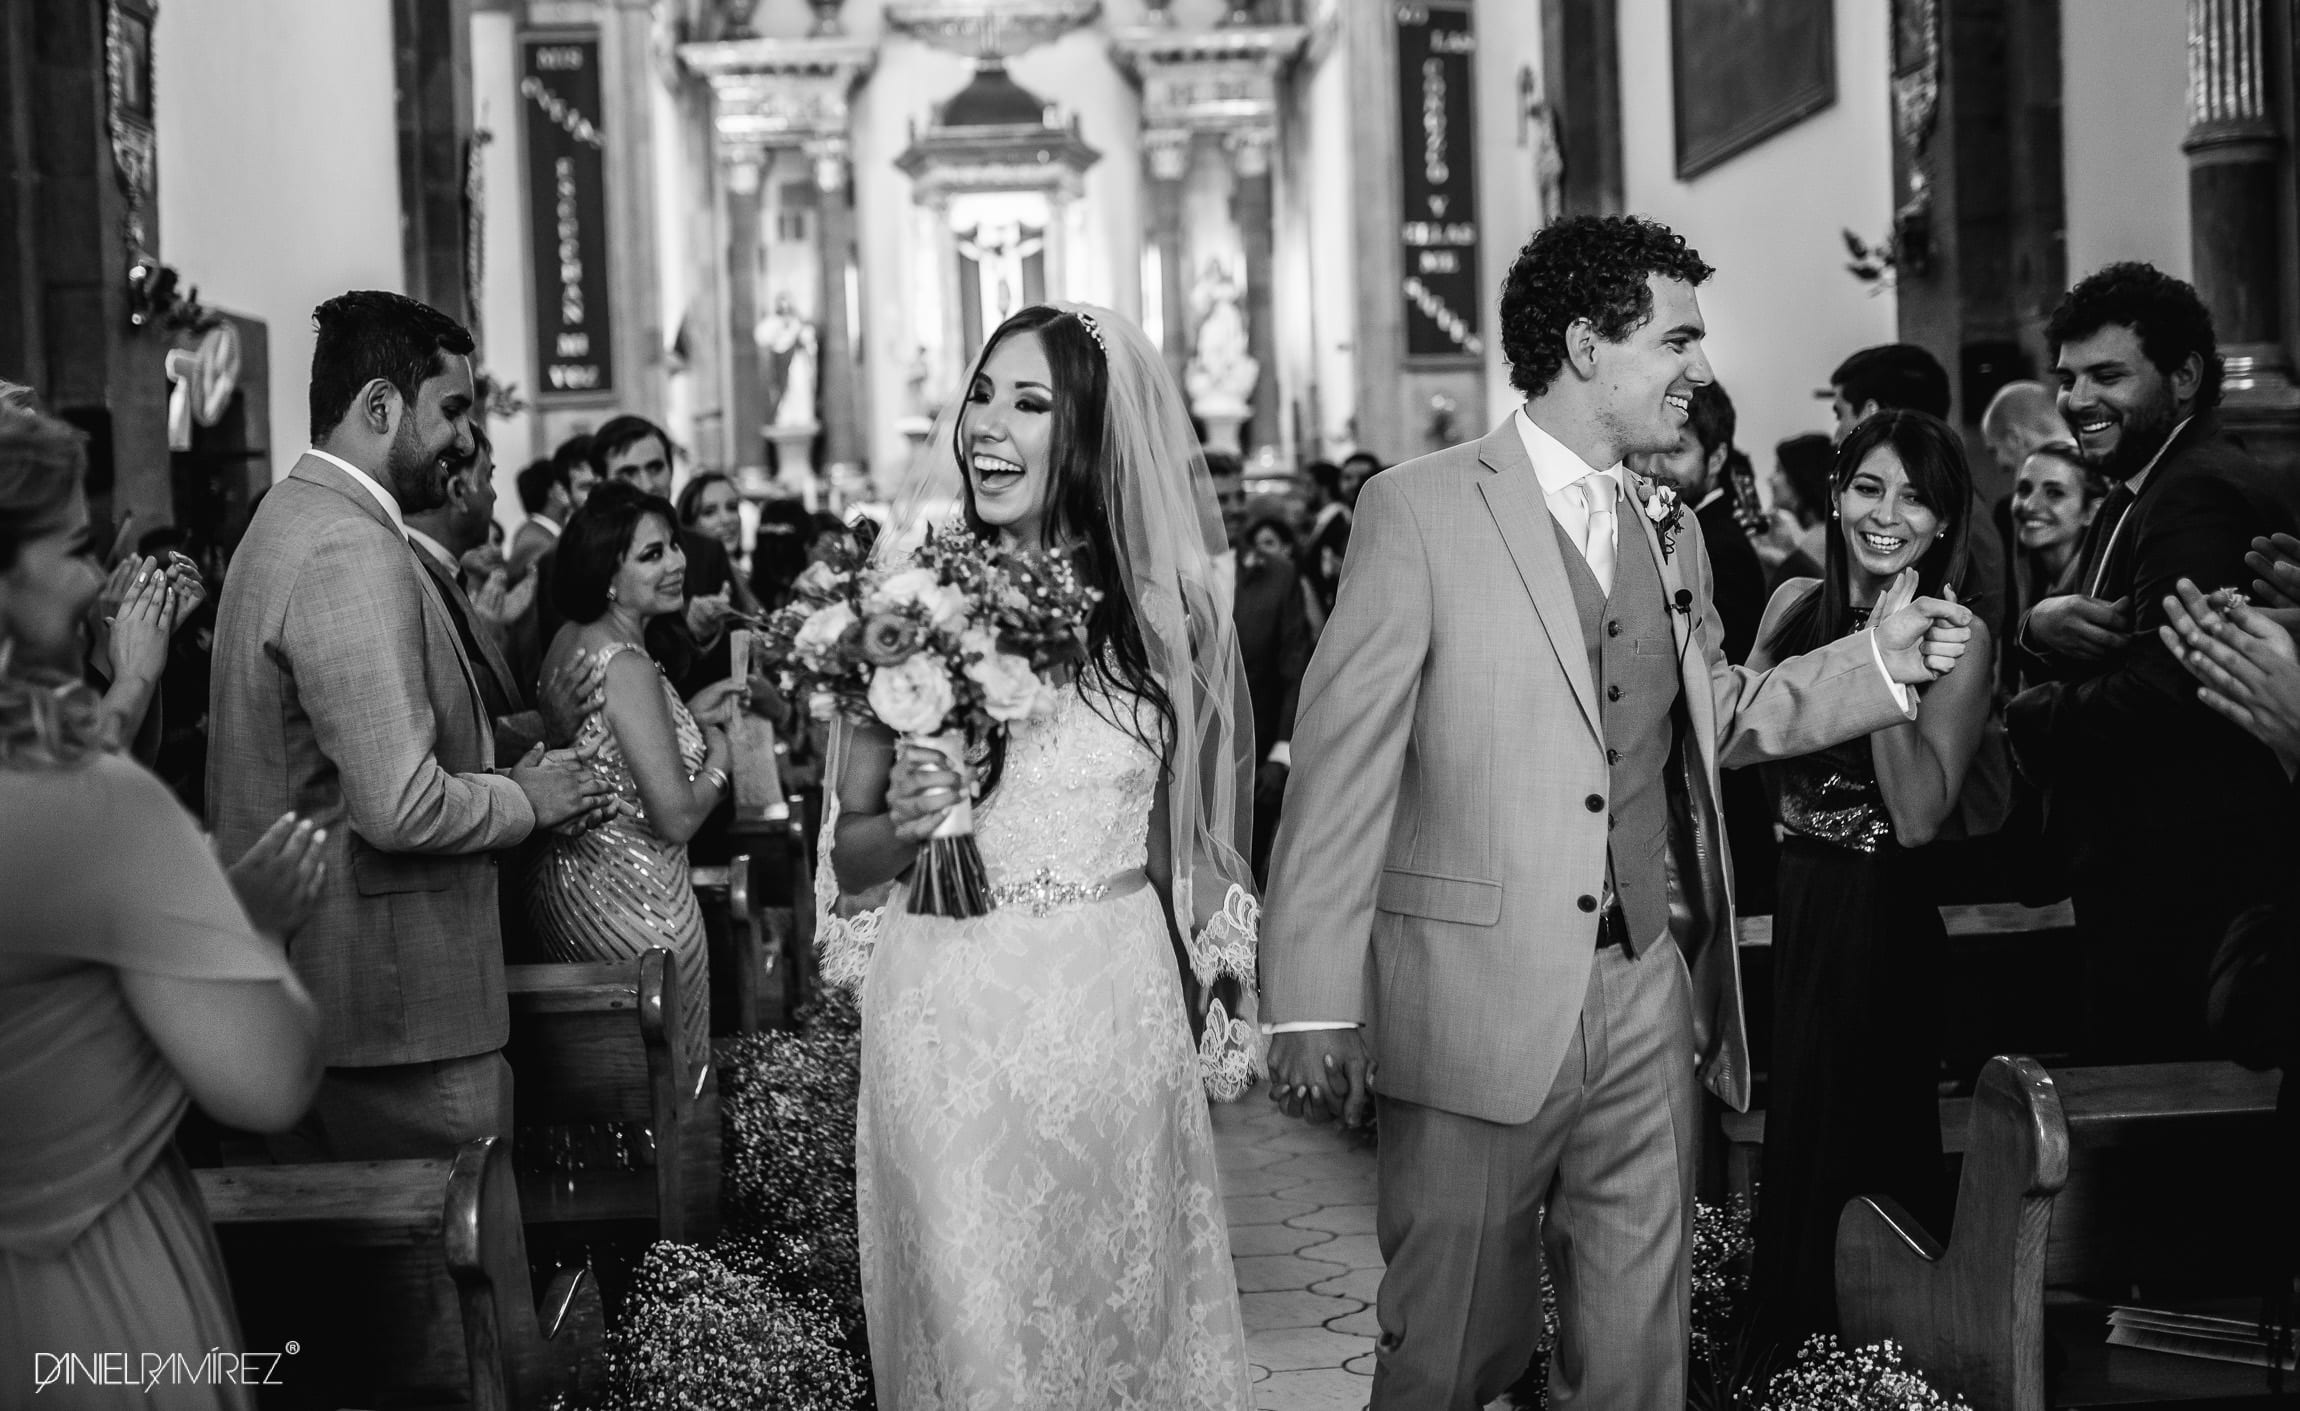 san miguel de allende weddings photography